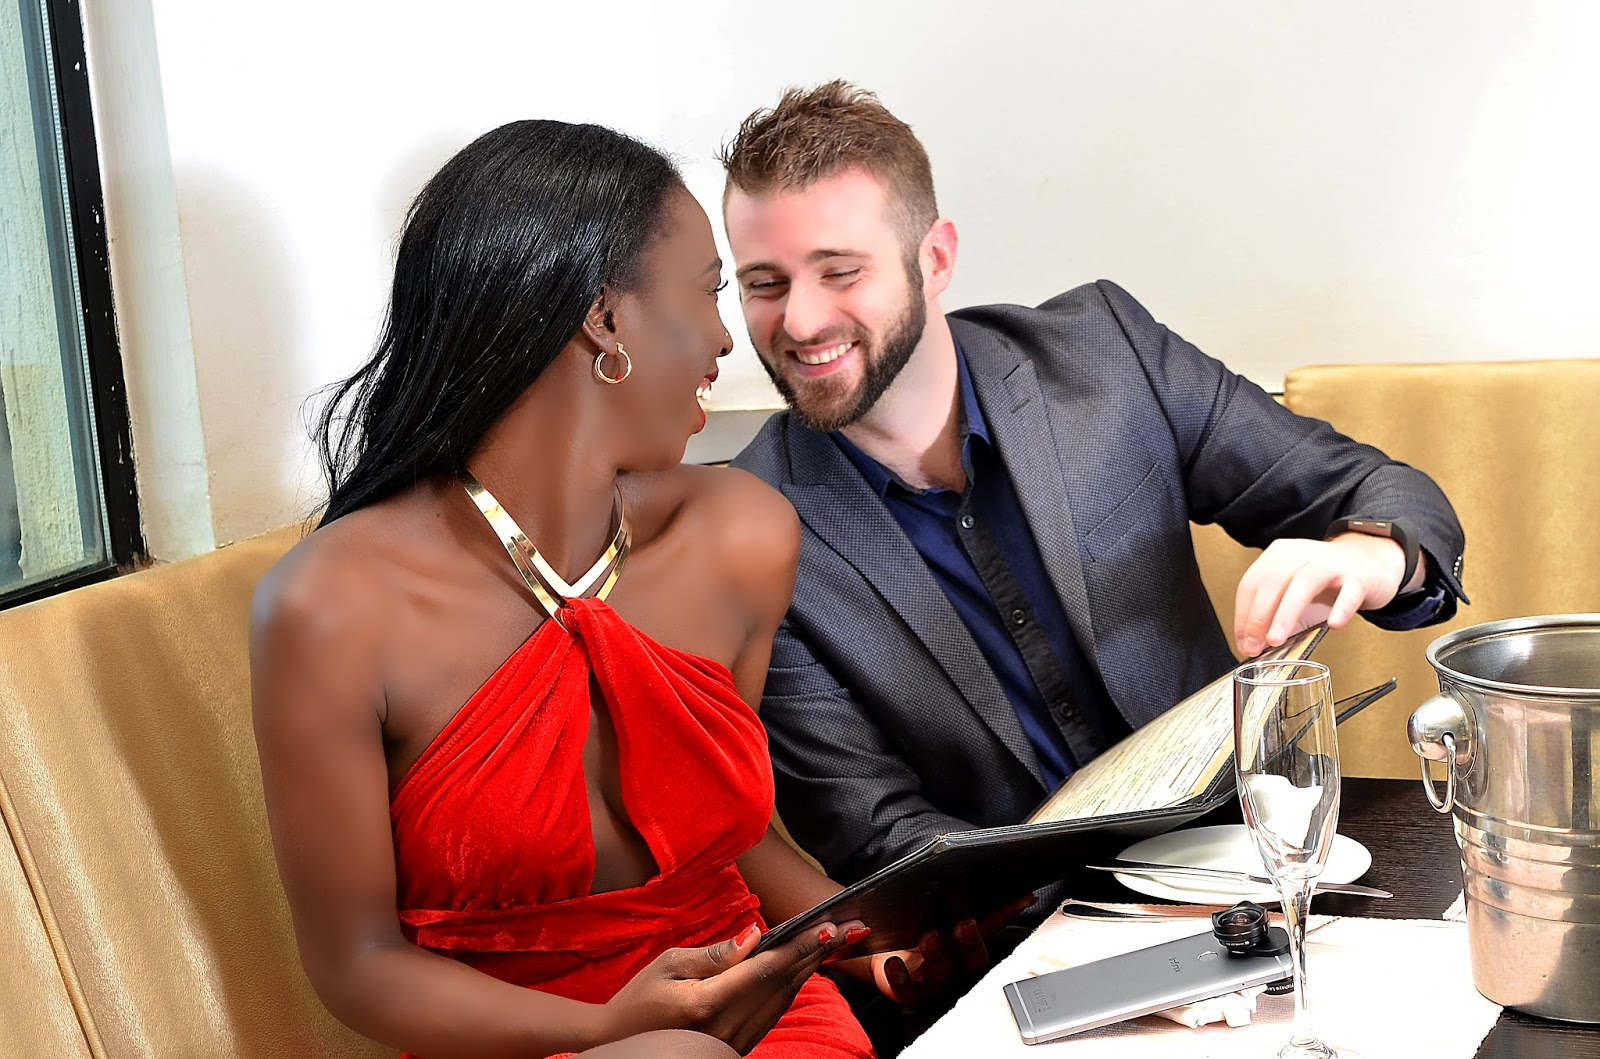 valentines 2017, style with ezil, Ezil, Valentines date ideas, what to do on valentines day, what to wear on valentines day, February 2017 , La Maison Royale, Romantic hotels in Kenya, hotels in Kenya, Kenya hotels, Nairobi hotels